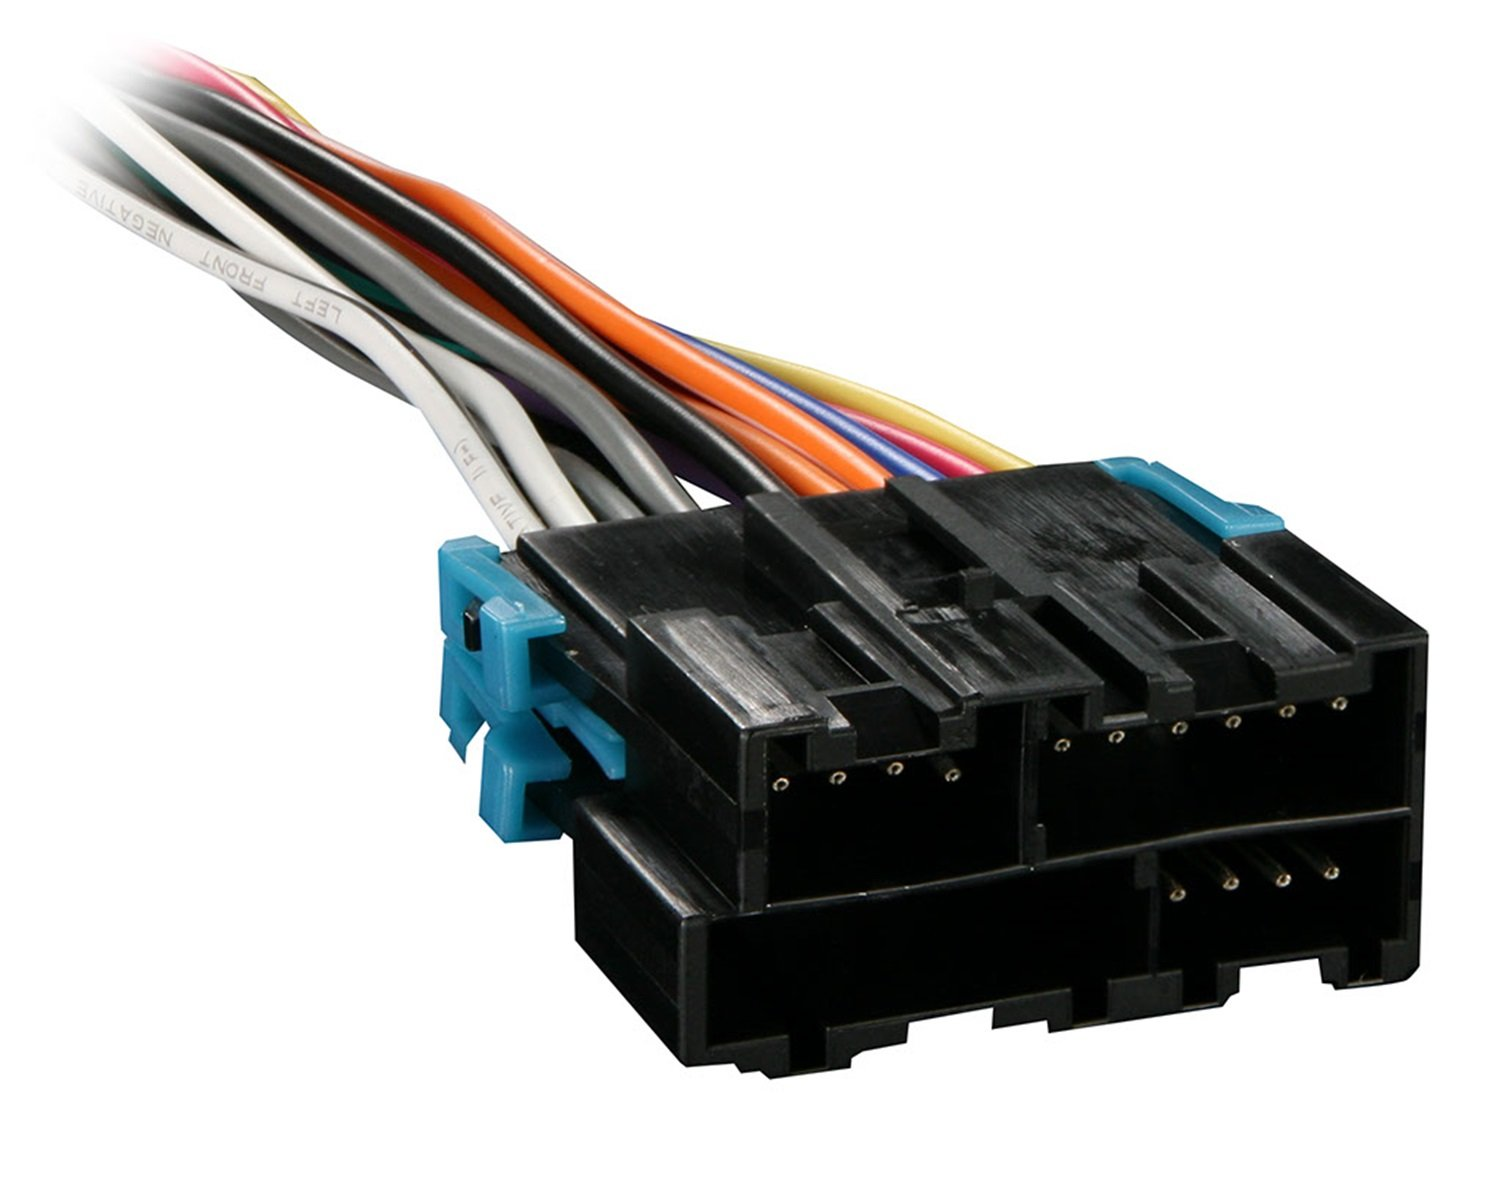 61 CwjZt1hL._SL1500_ radio wiring harnesses amazon com wiring harness for car stereo installation at reclaimingppi.co